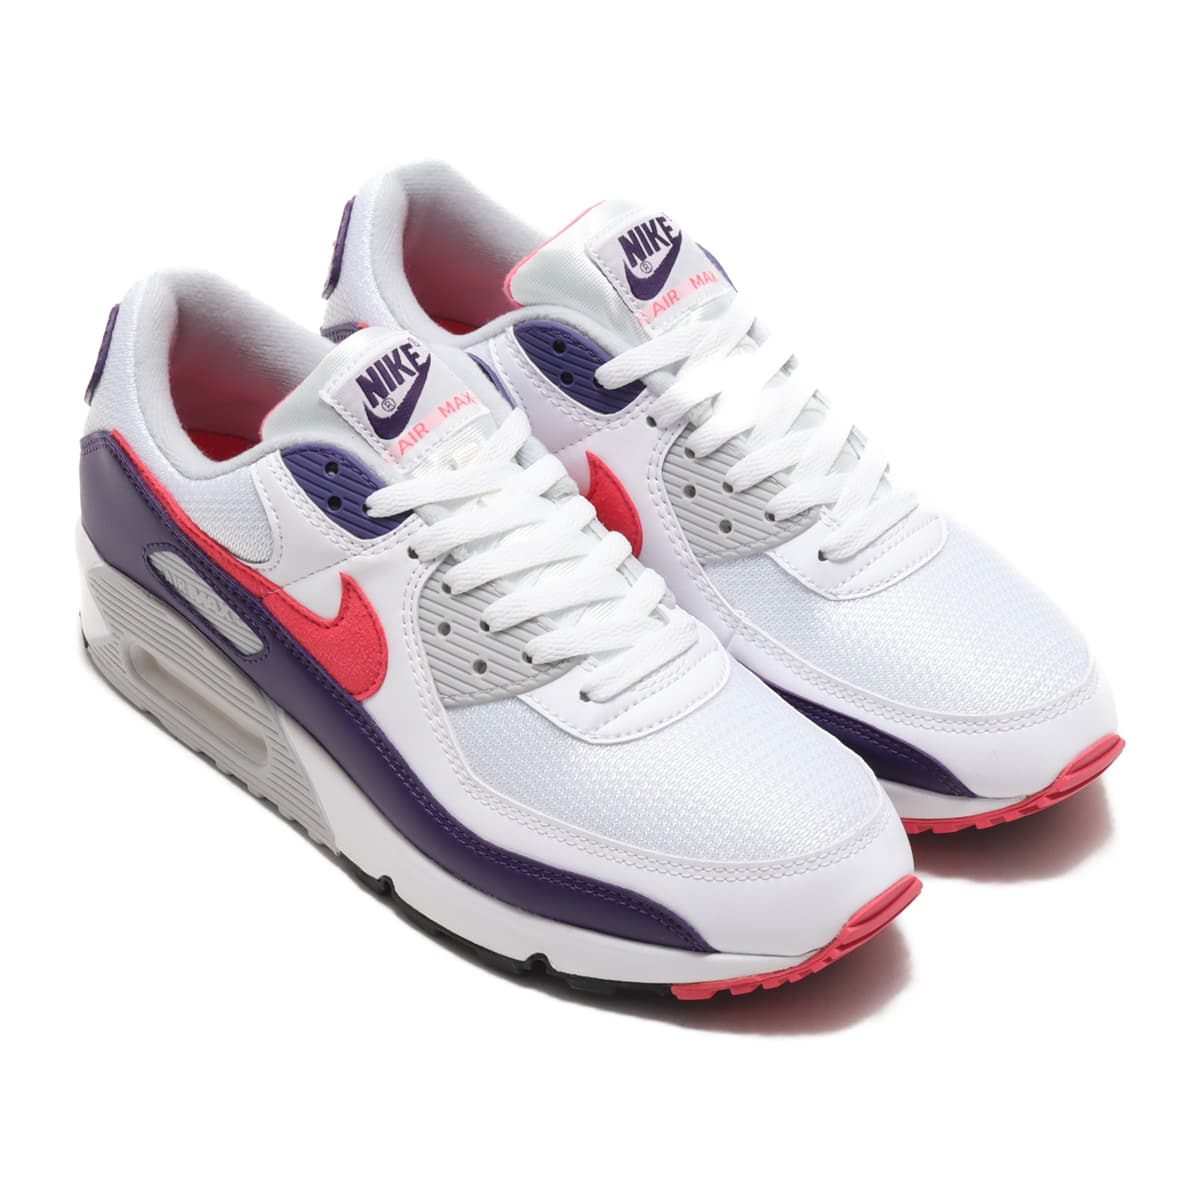 NIKE AIR MAX III WHITE/EGGPLANT-FLARE-ZEN GREY 20FA-I_photo_large